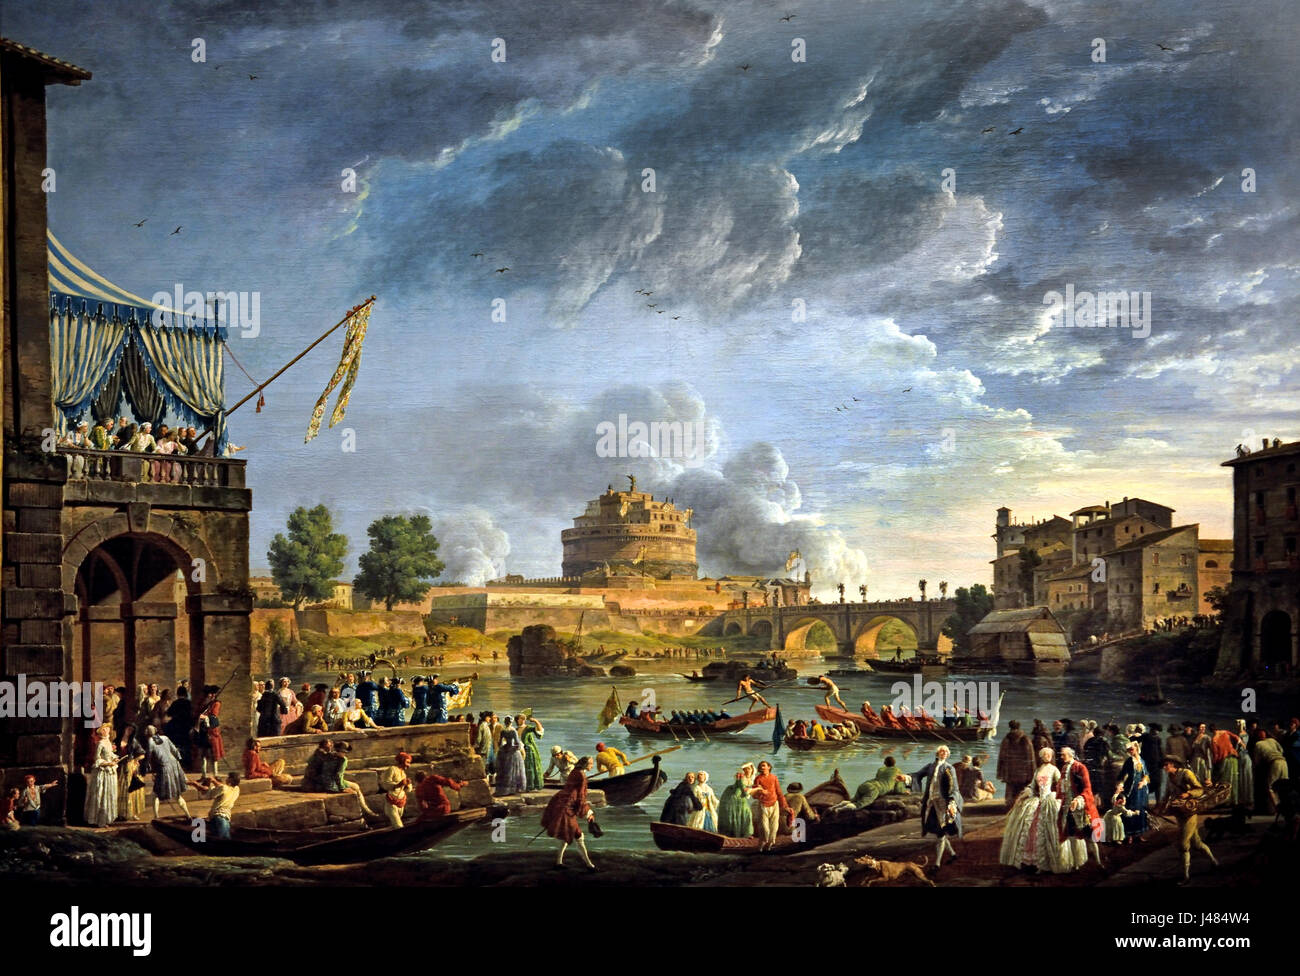 A Sporting Contest on the Tiber at Rome, 1750 Vernet, Claude Joseph1714-1789 France French (The Bridge and Castle - Stock Image